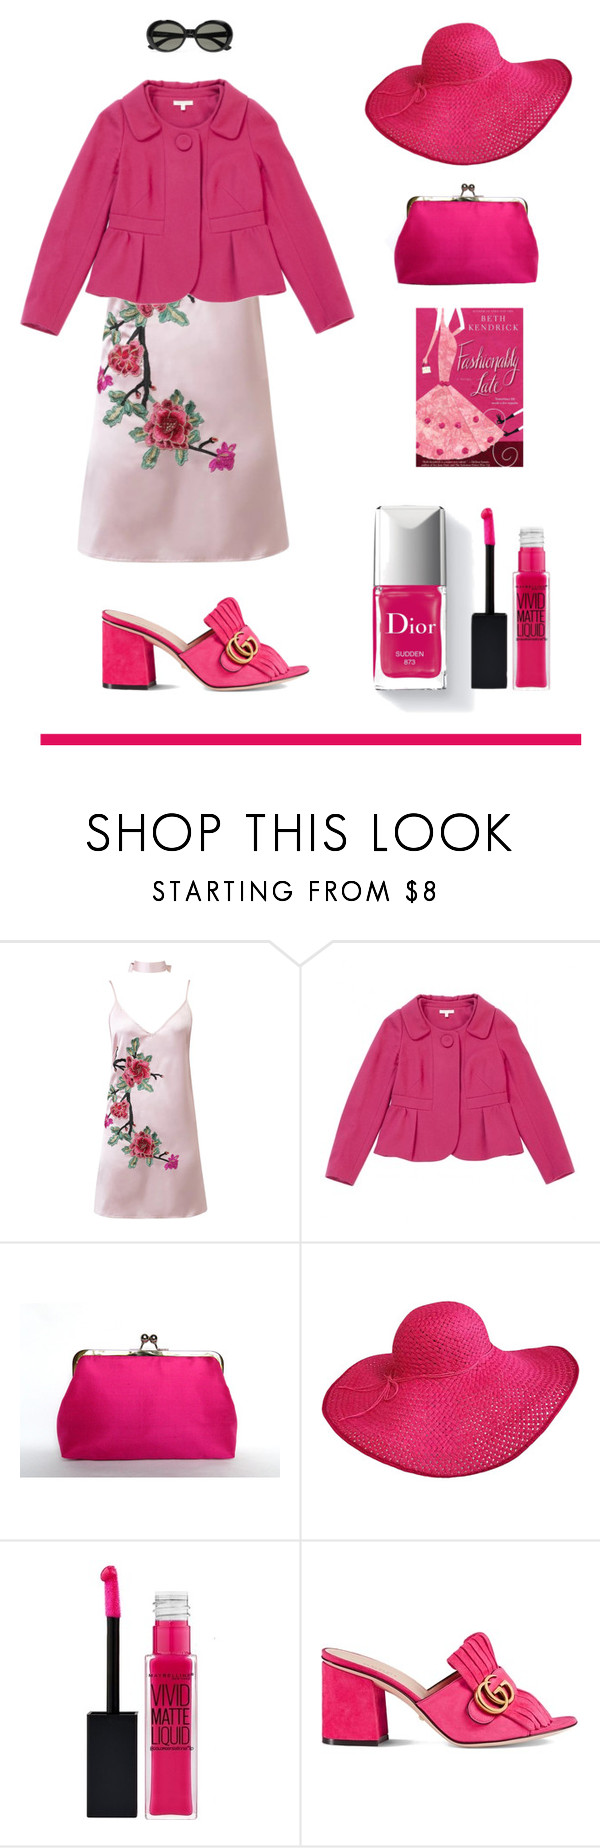 """""""Vintage pink"""" by jane-doe-1977 ❤ liked on Polyvore featuring WithChic, Paule Ka, Couture Colour, Gucci, Yves Saint Laurent and vintage"""